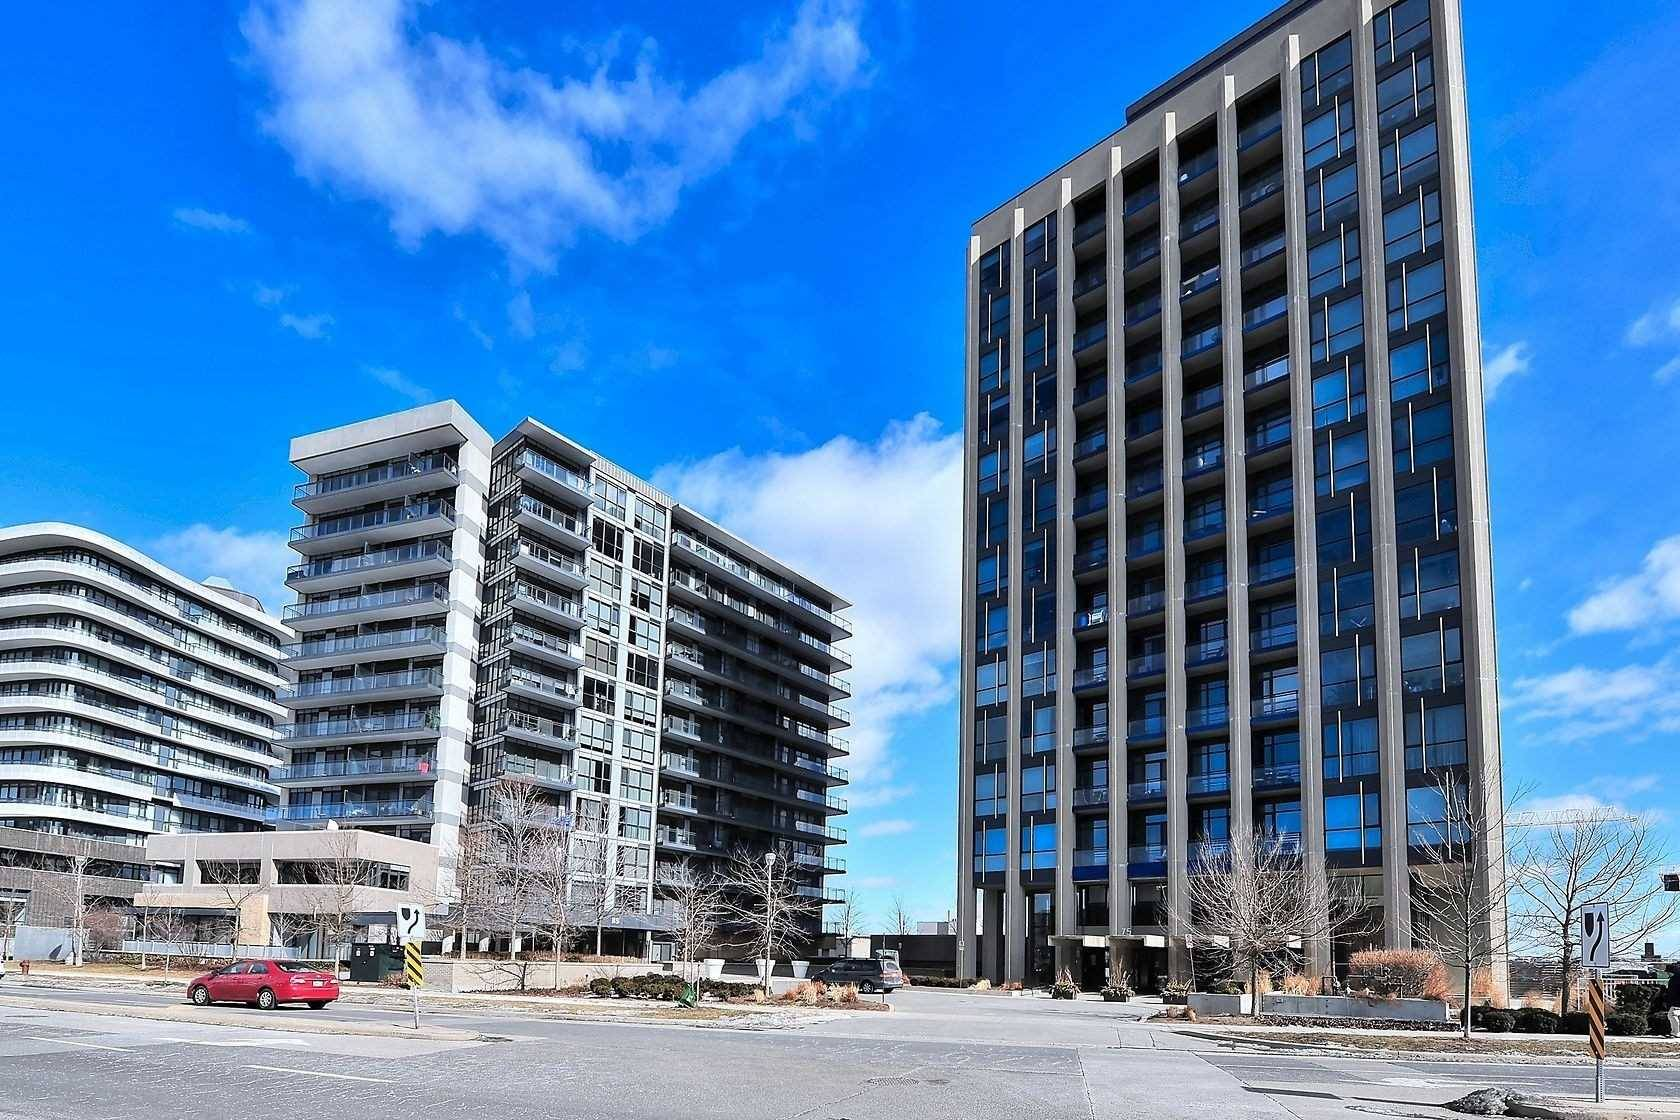 Buliding: 85 The Donway Way West, Toronto, ON